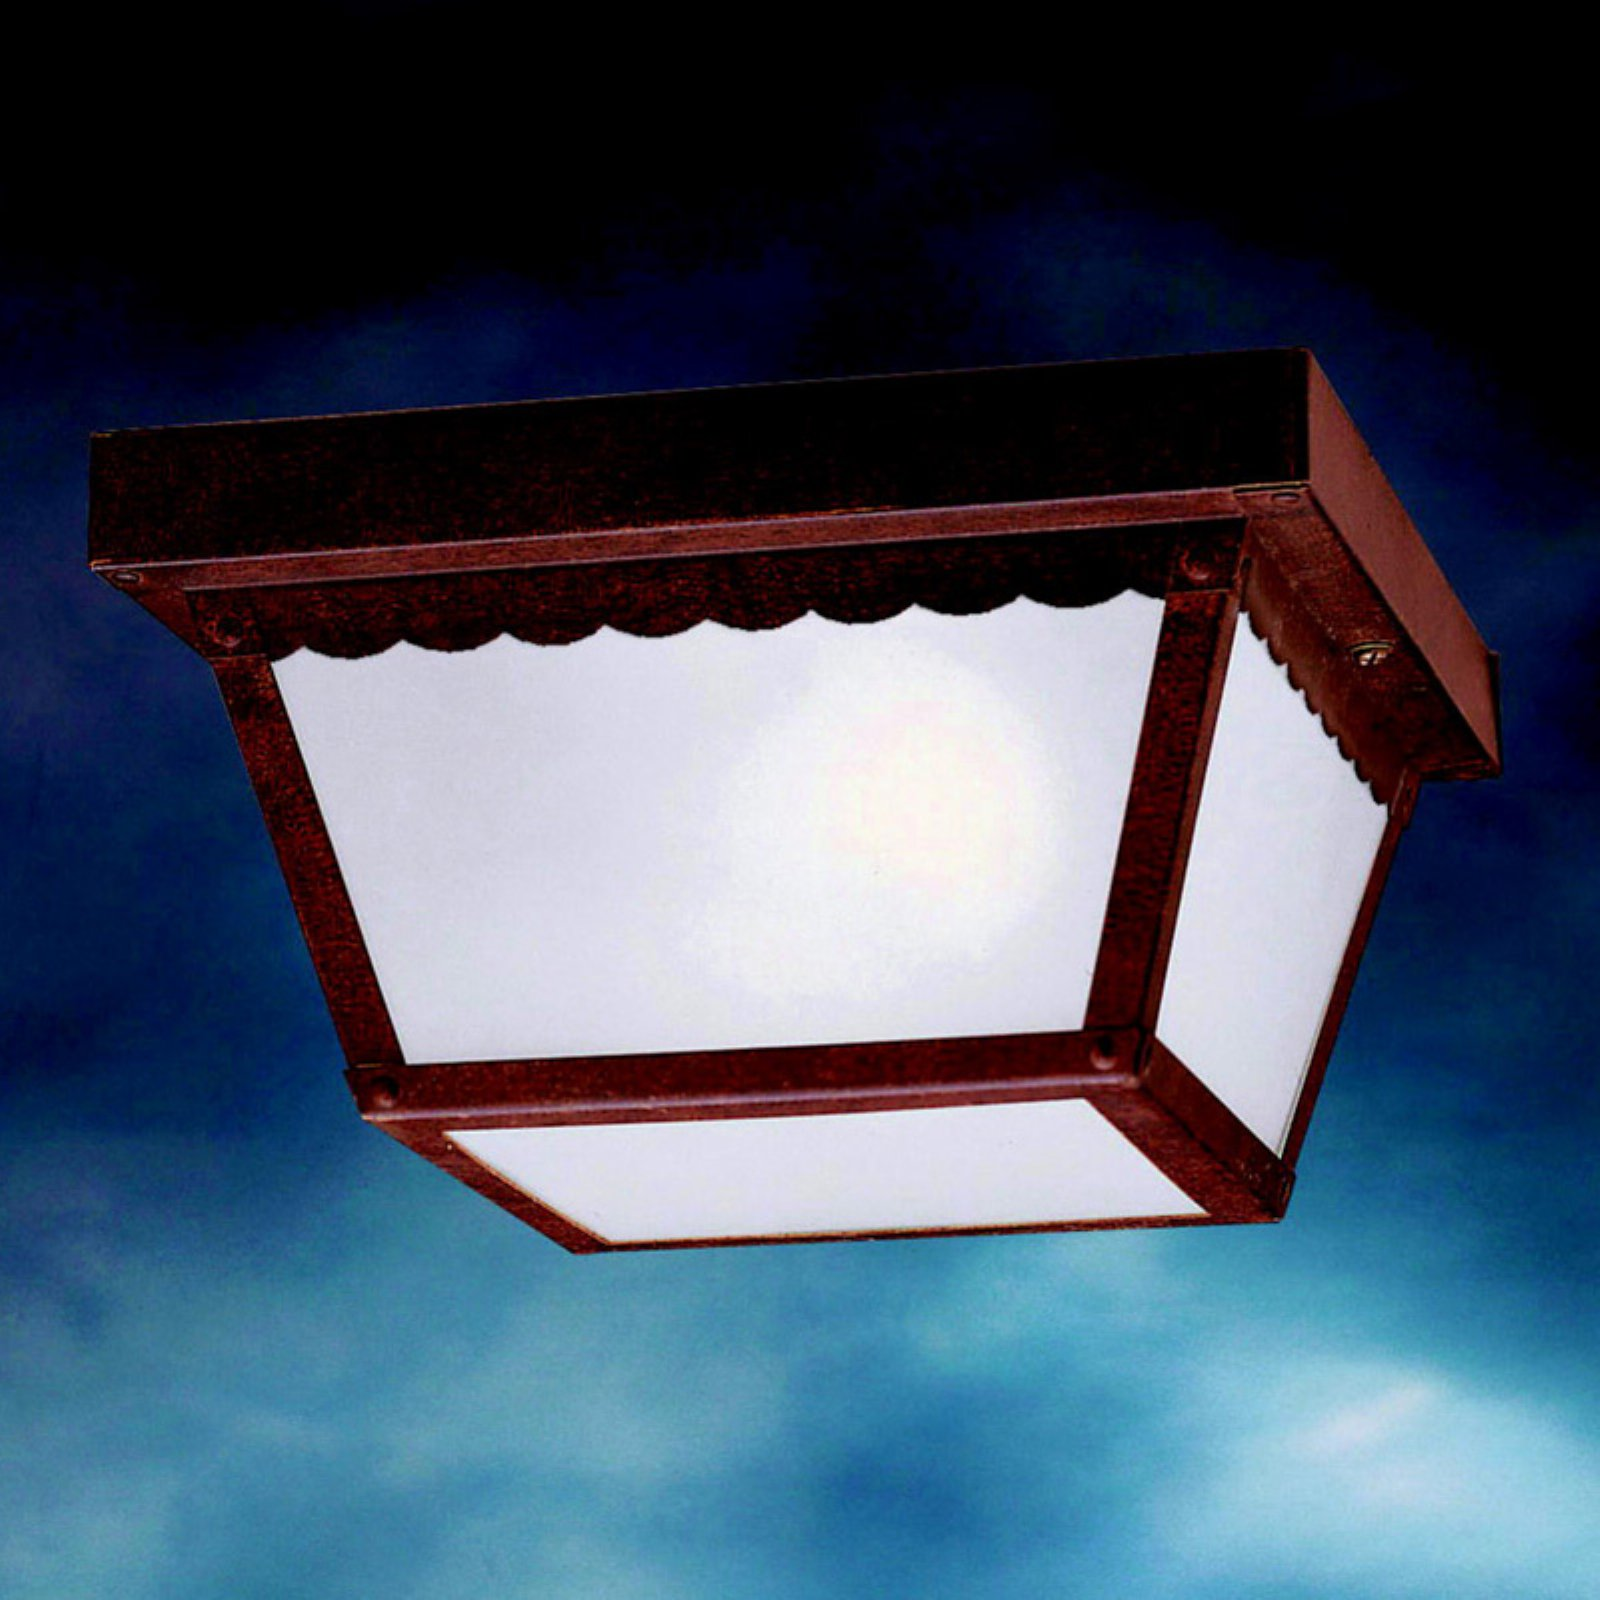 Kichler Outdoor Miscellaneous 345 Outdoor Ceiling - 9.25 in.